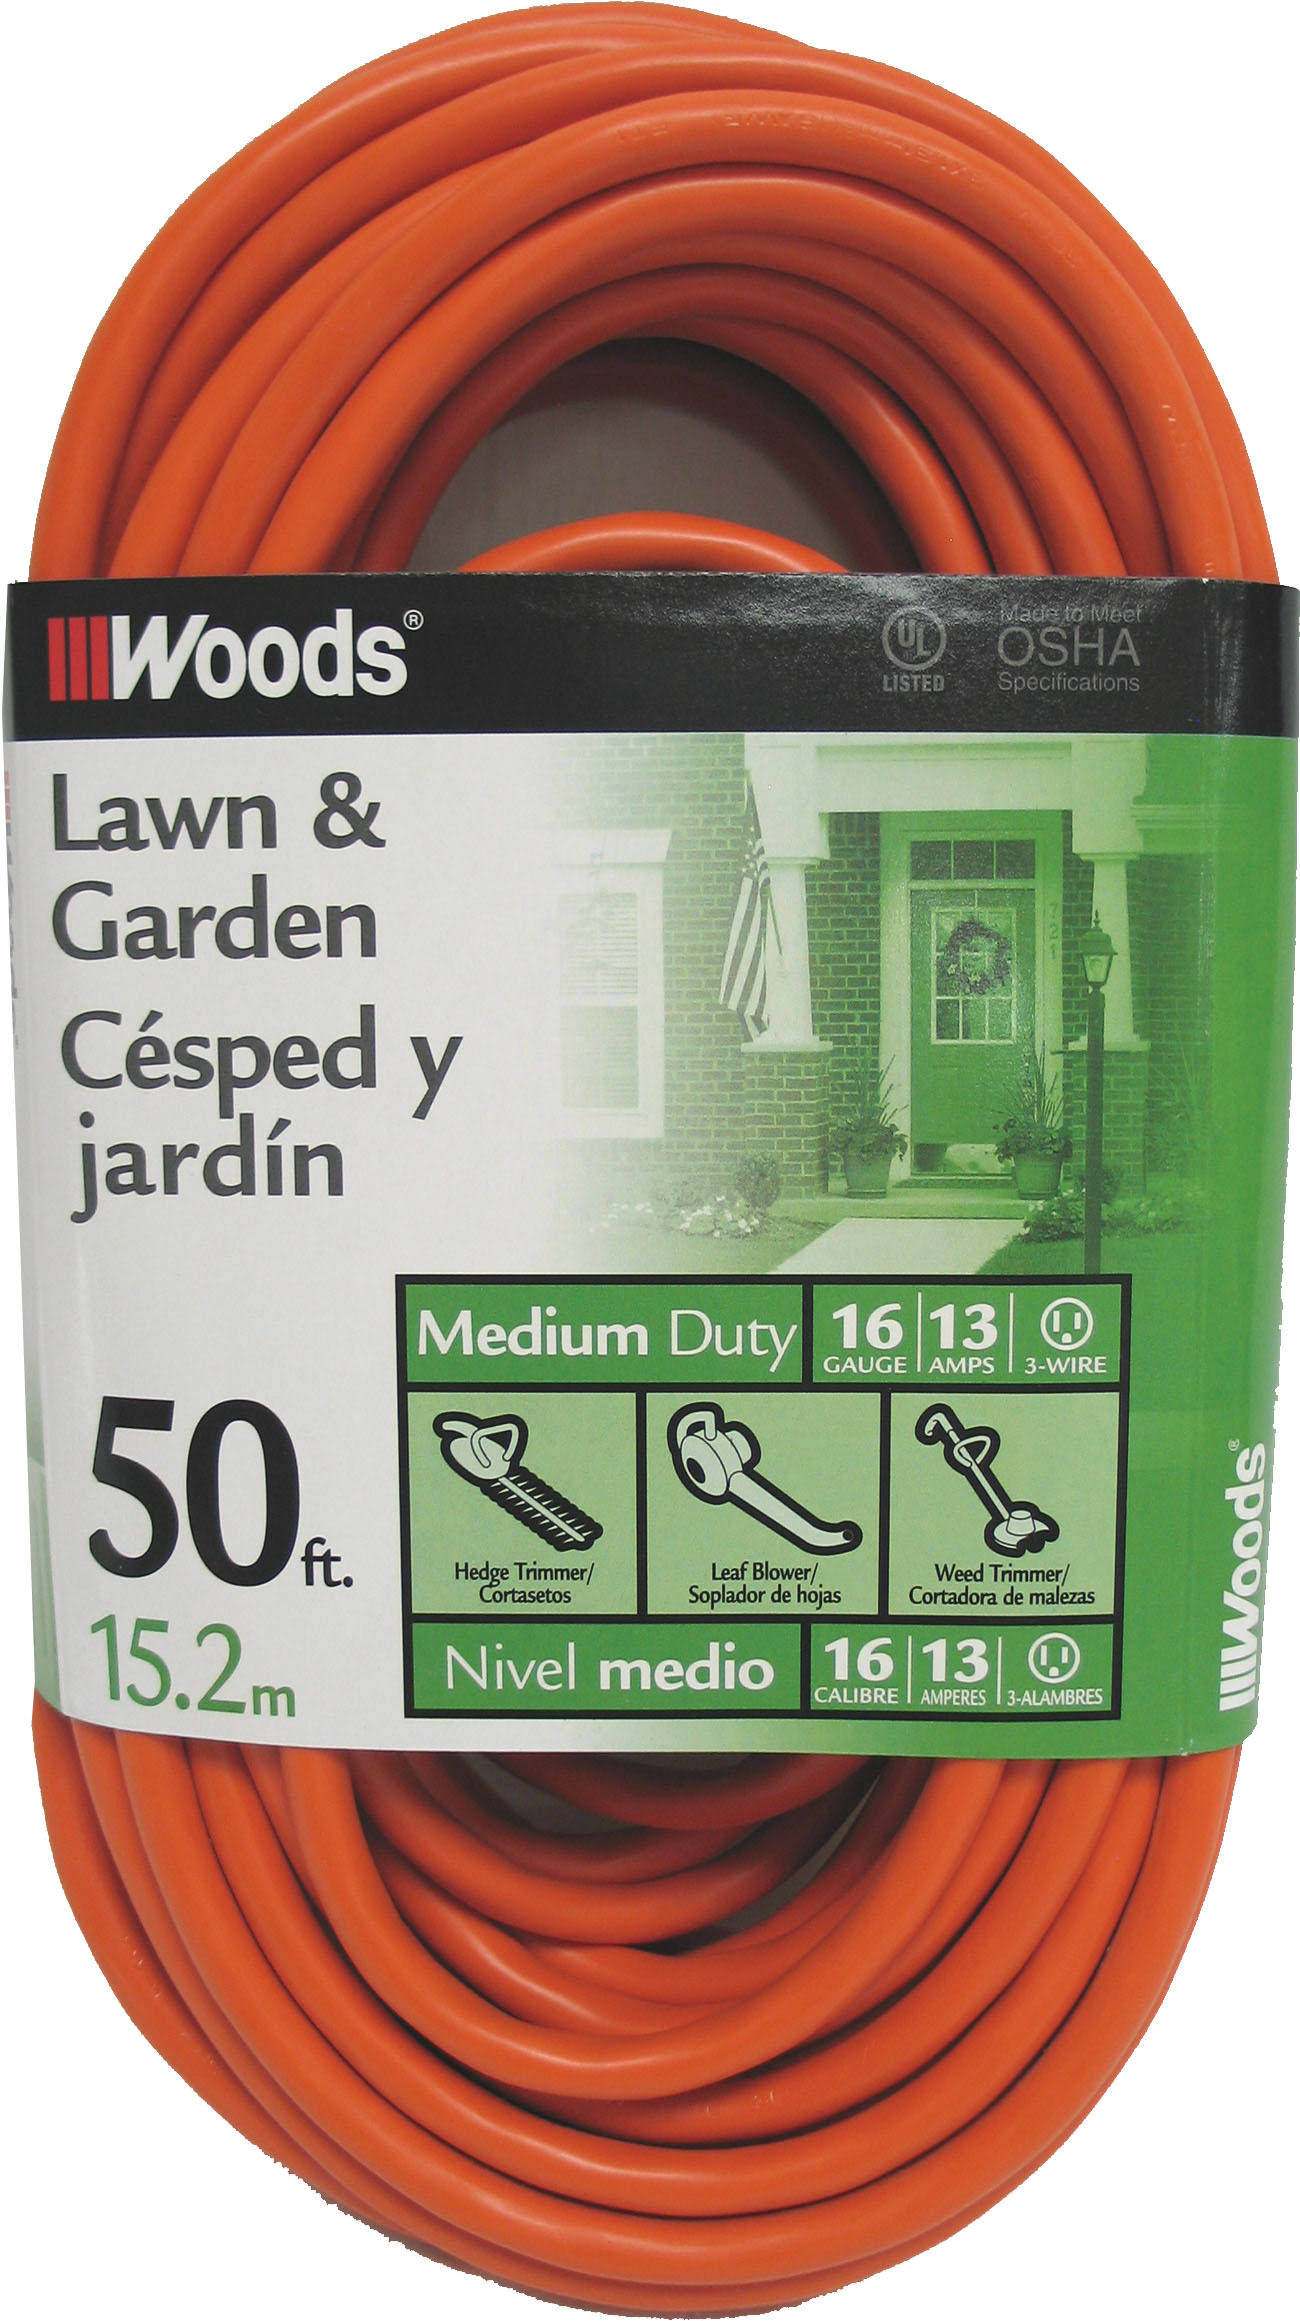 Woods Outdoor Cord - Orange, 50ft